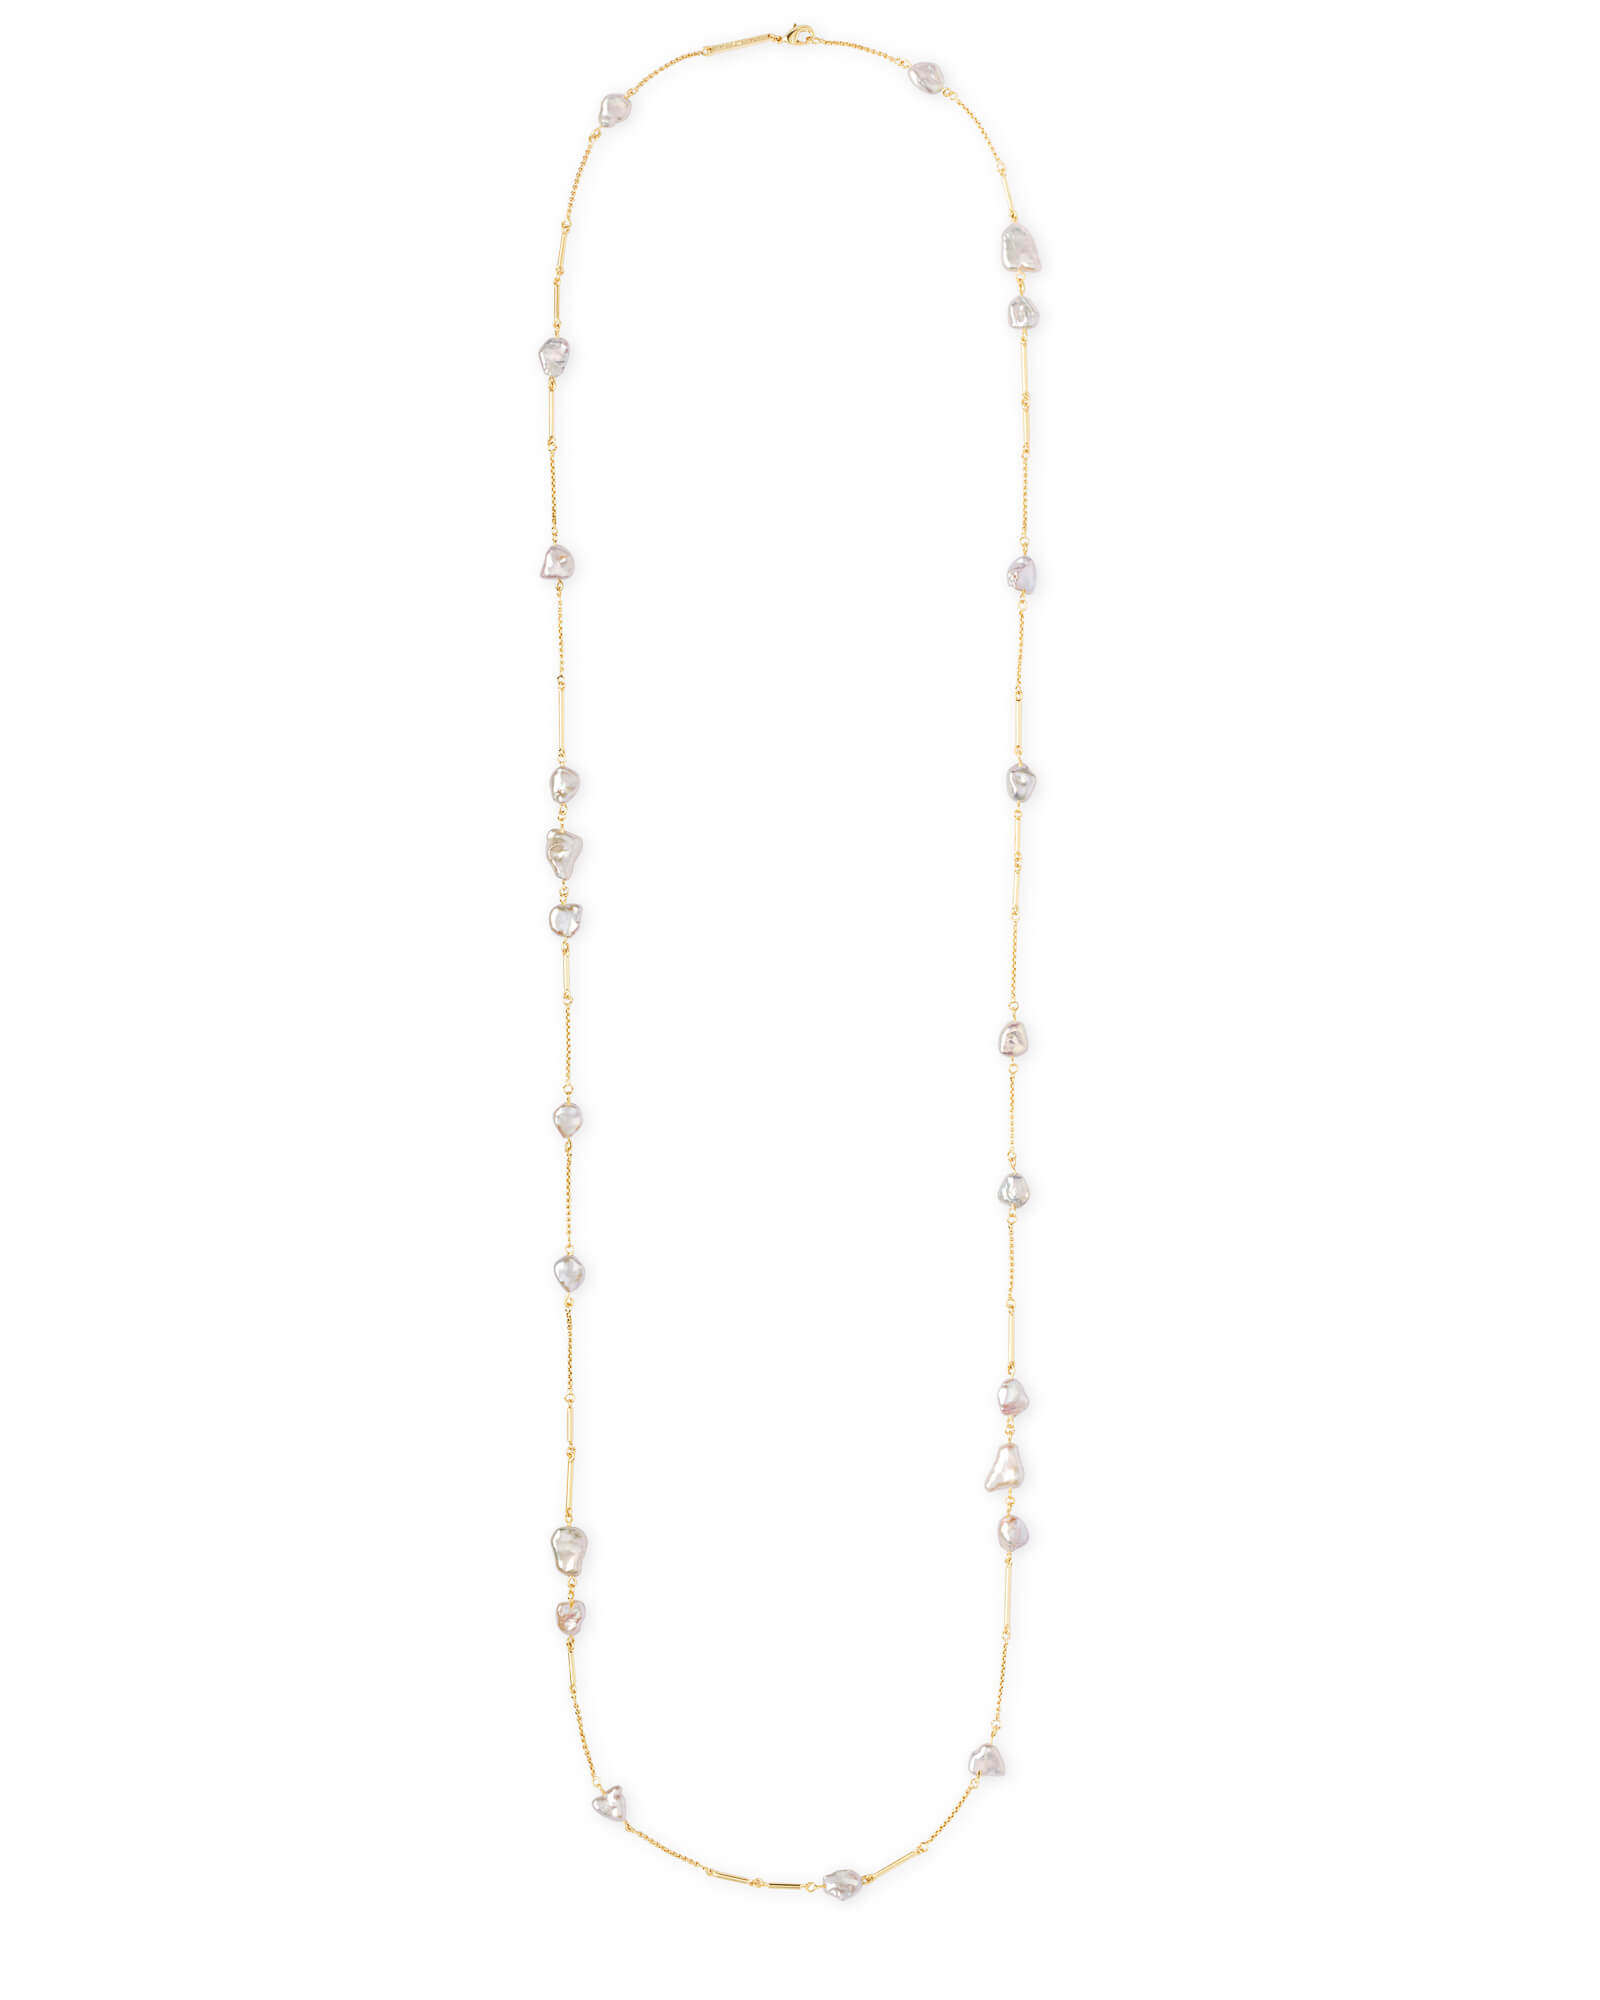 Sabrina Gold Long Necklace in Pearl